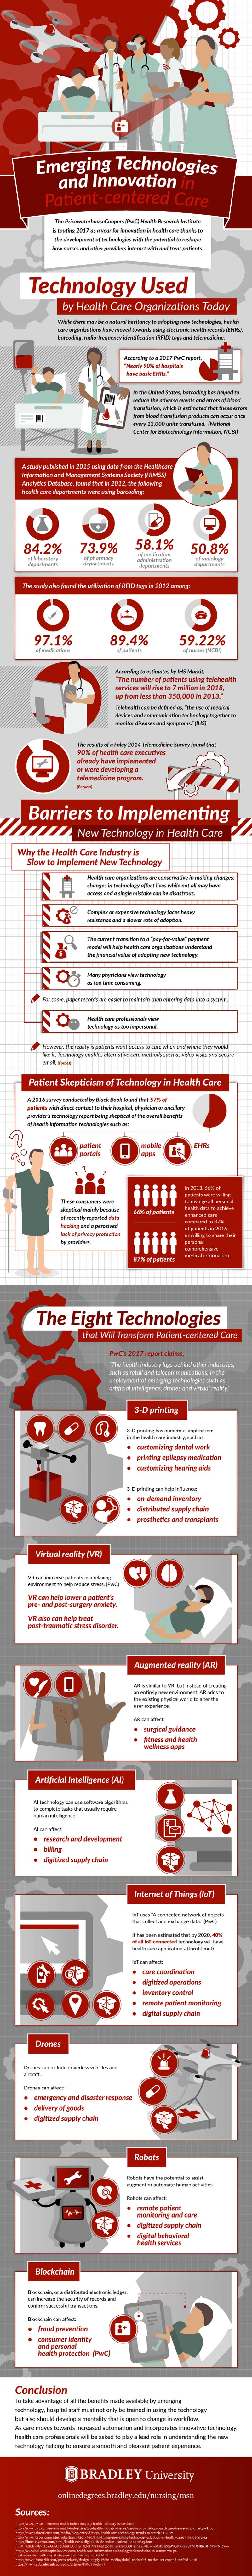 Infographic of emerging technologies and innovation in patient-centered care